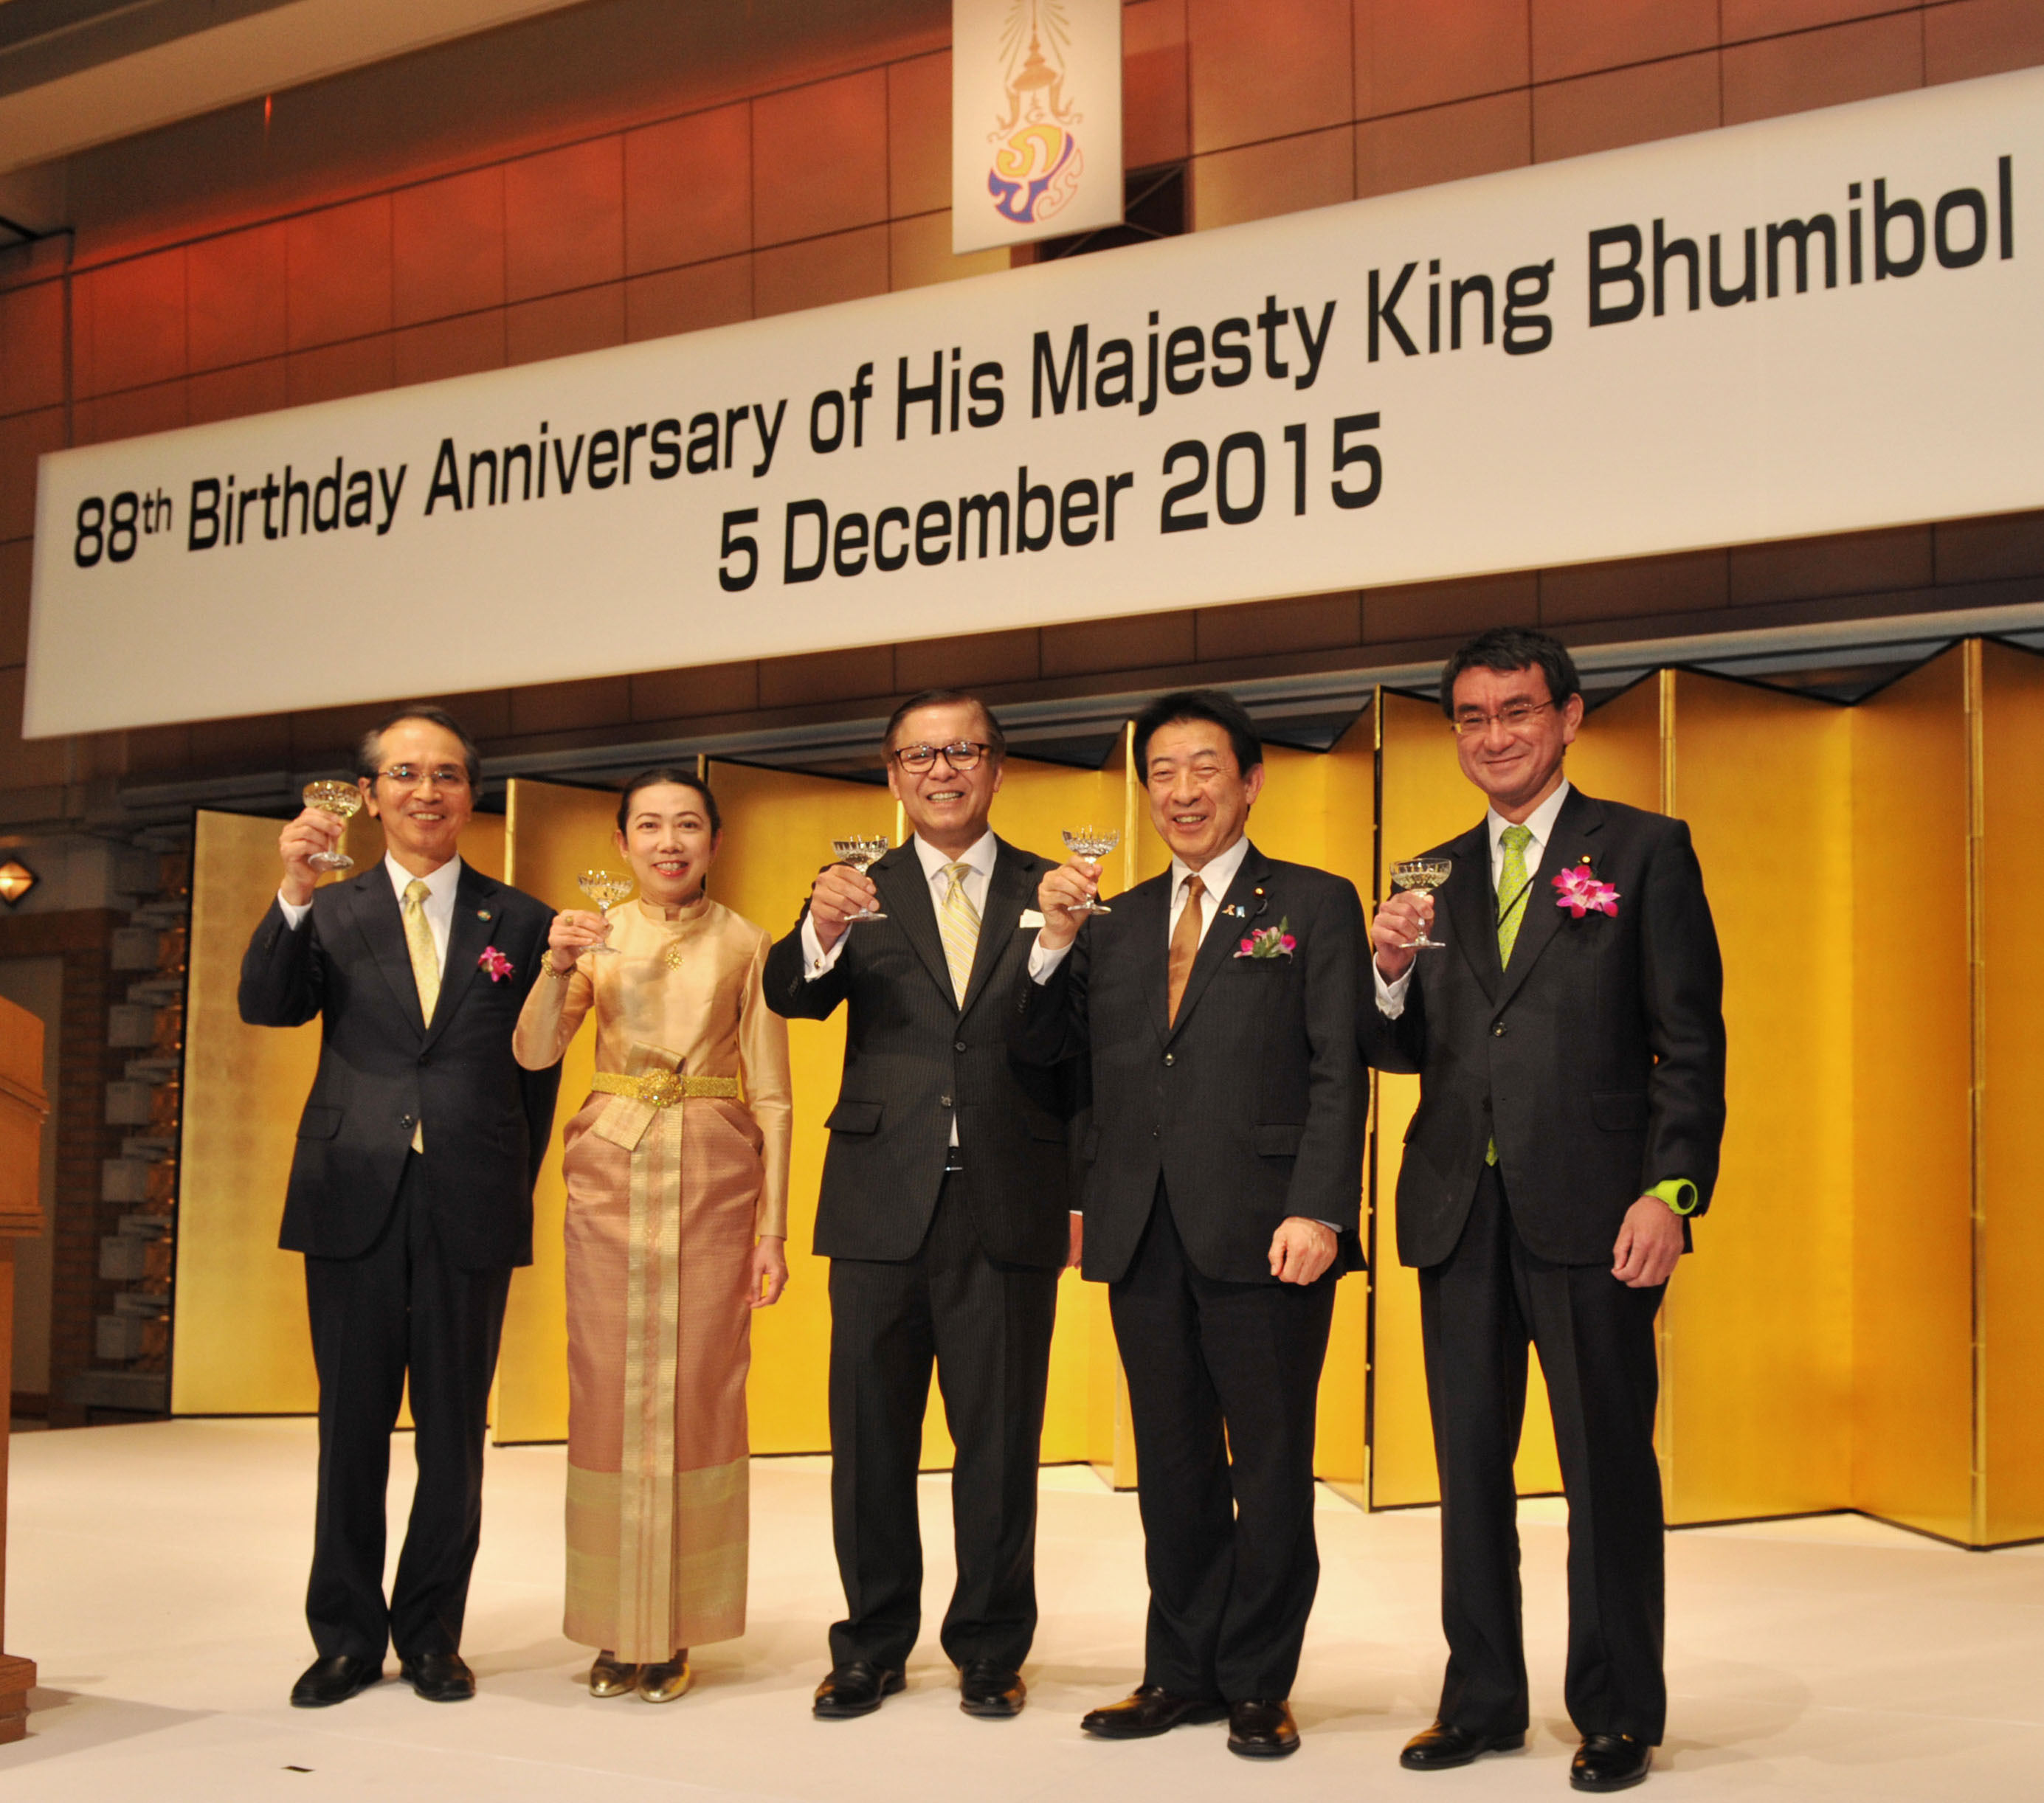 Thailand Ambassador Sihasak Phuangketkeow (center) and his wife Varaporn (second from left) raise their glasses with (from left) President of The Japan Thailand Association and Chairman of the Japan-Thailand Business Forum Teisuke Kitayama; Health, Labor and Welfare Minister and Chairman of the Japan-Thailand Parliamentary Friendship League Yasuhide Shiozaki; and National Public Safety Commission Chairman, Minister on Administrative Reform and Minister in Charge of Disaster Management Taro Kono during a reception celebrating the country's National Day and the 88th birthday of Thailand's King Bhumibol Adulyadej at The Imperial Hotel, Tokyo on Dec. 4. | YOSHIAKI MIURA